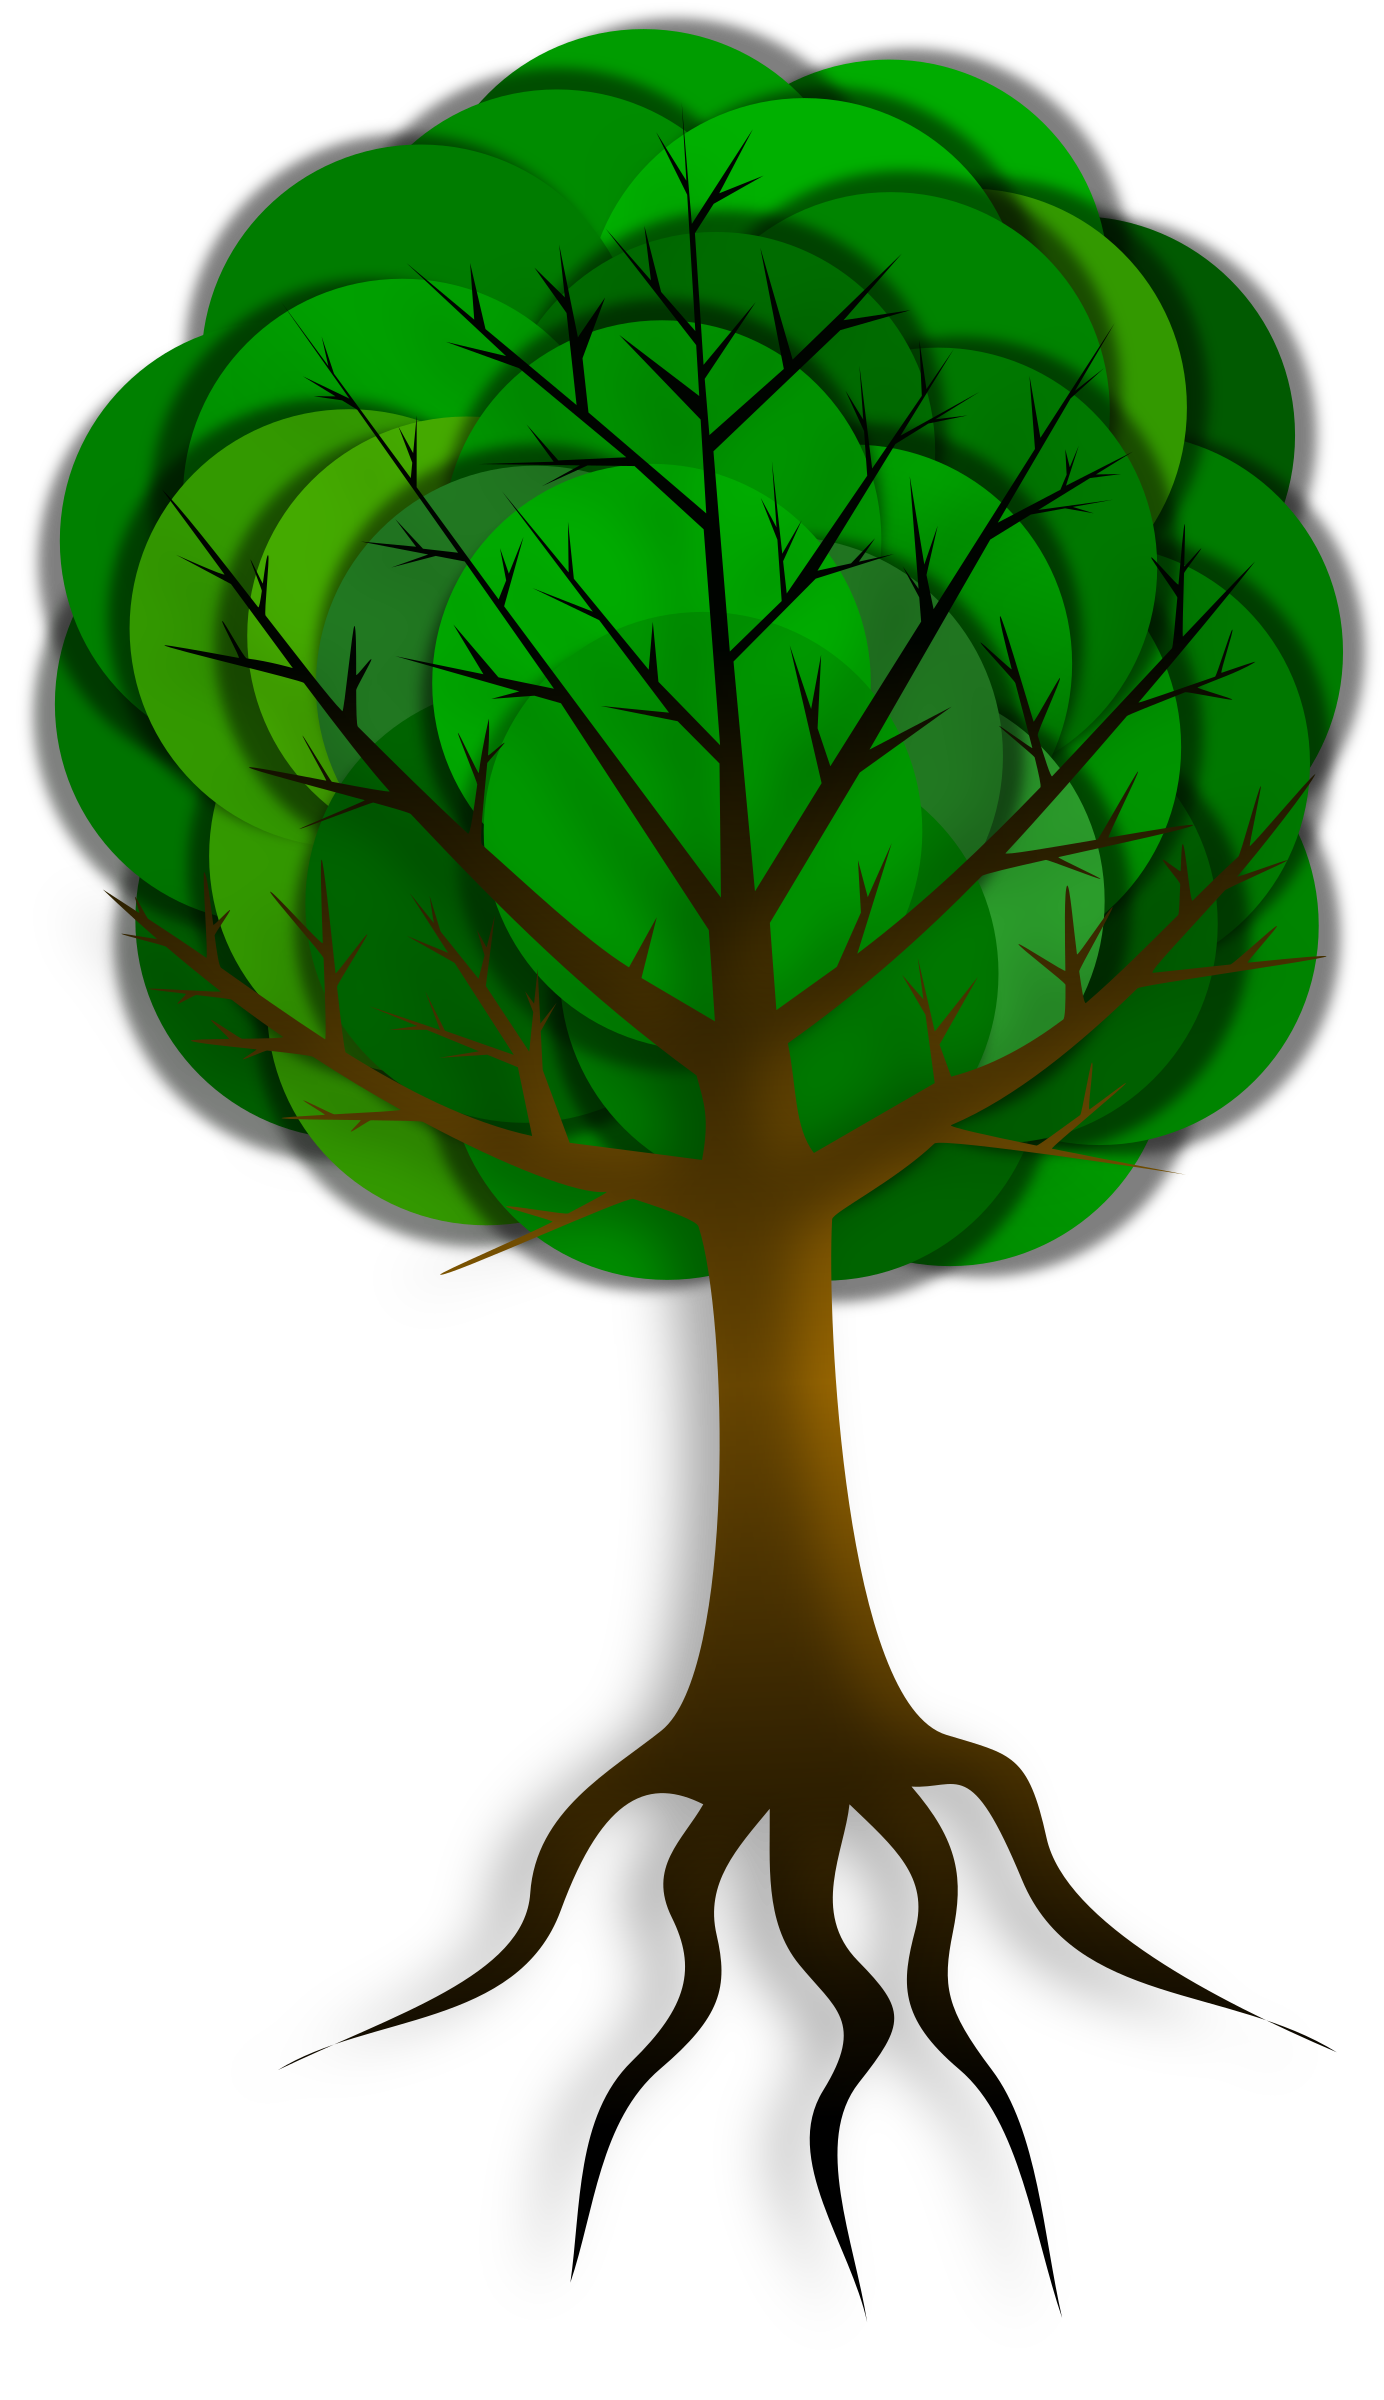 Tree clipart vegetable. Simple big image png